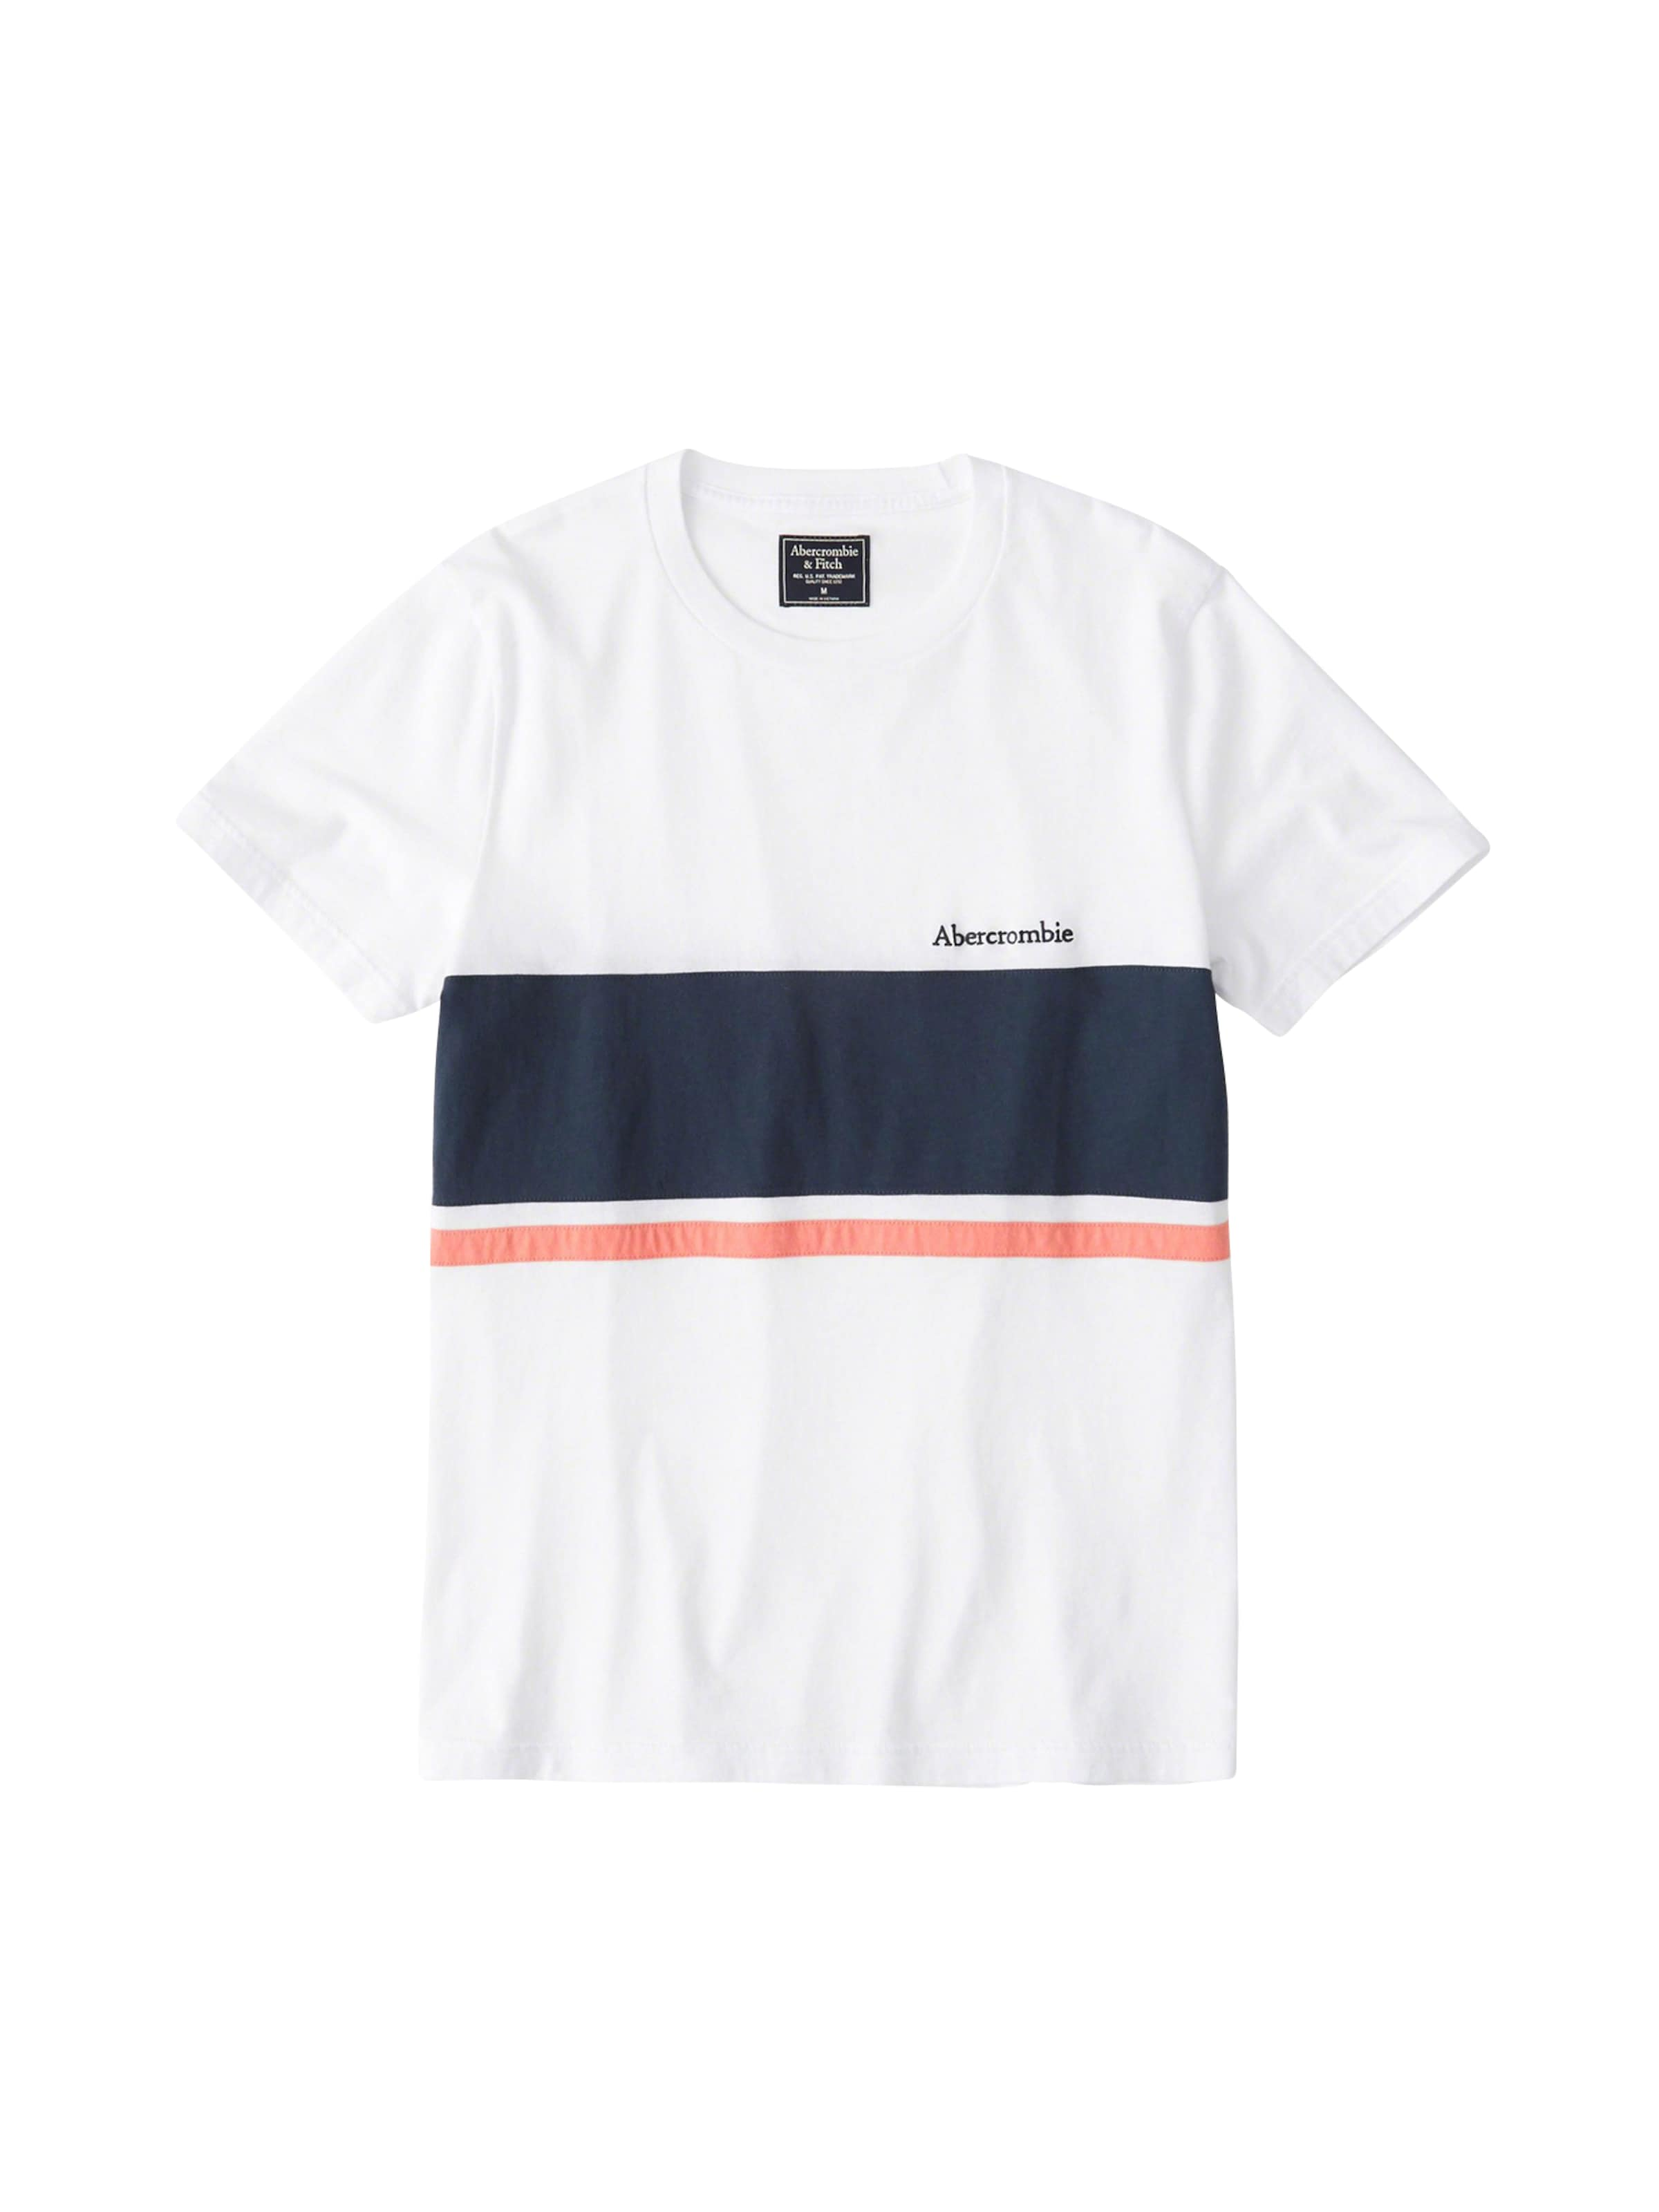 T 'chest Tee' Fitch En shirt Blanc Abercrombieamp; Stripe XP0ON8nwk